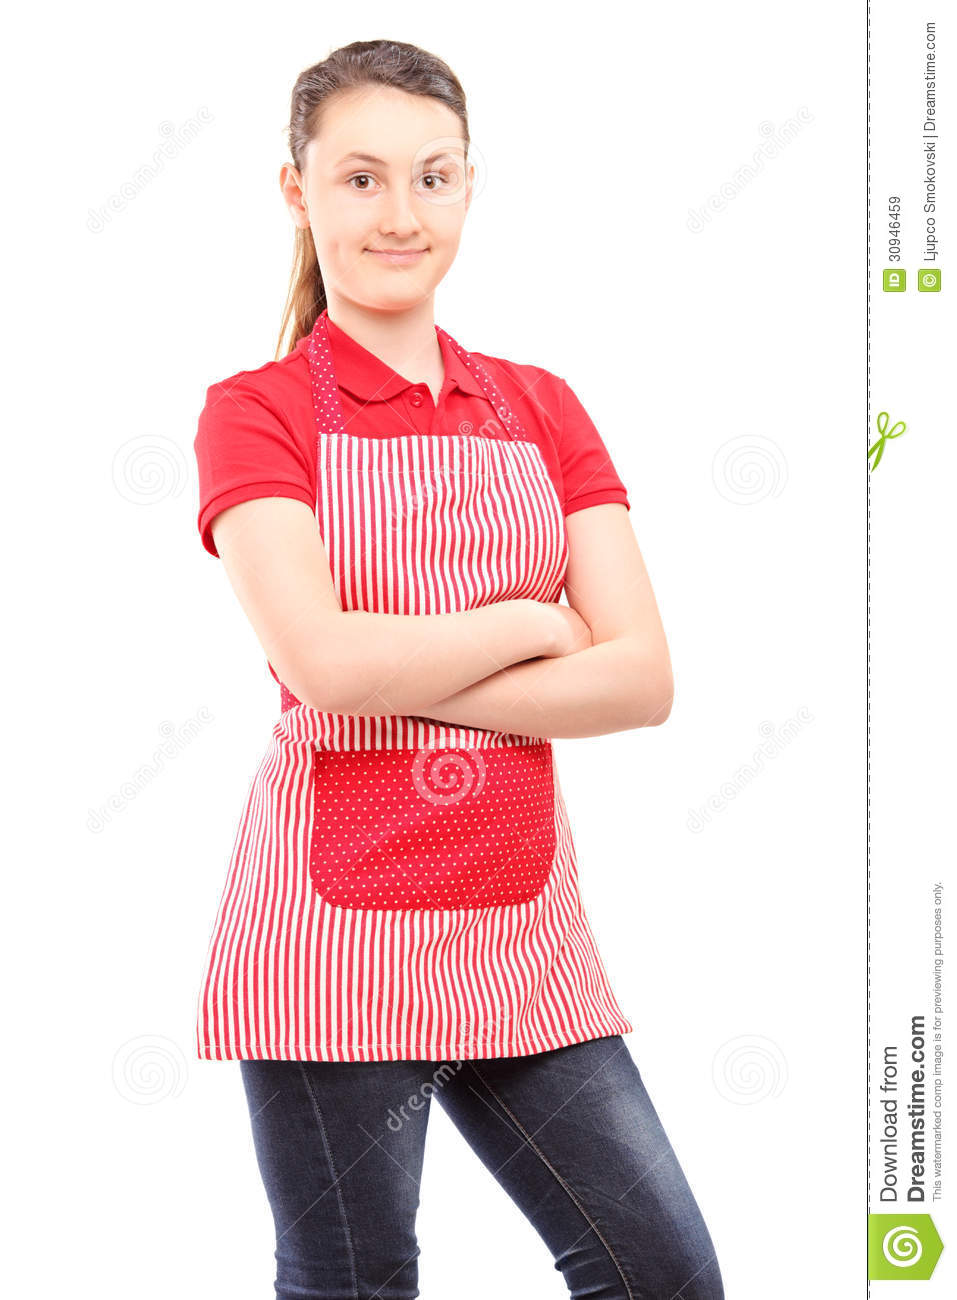 White apron girl - Smiling Girl Wearing An Apron And Looking At Camera